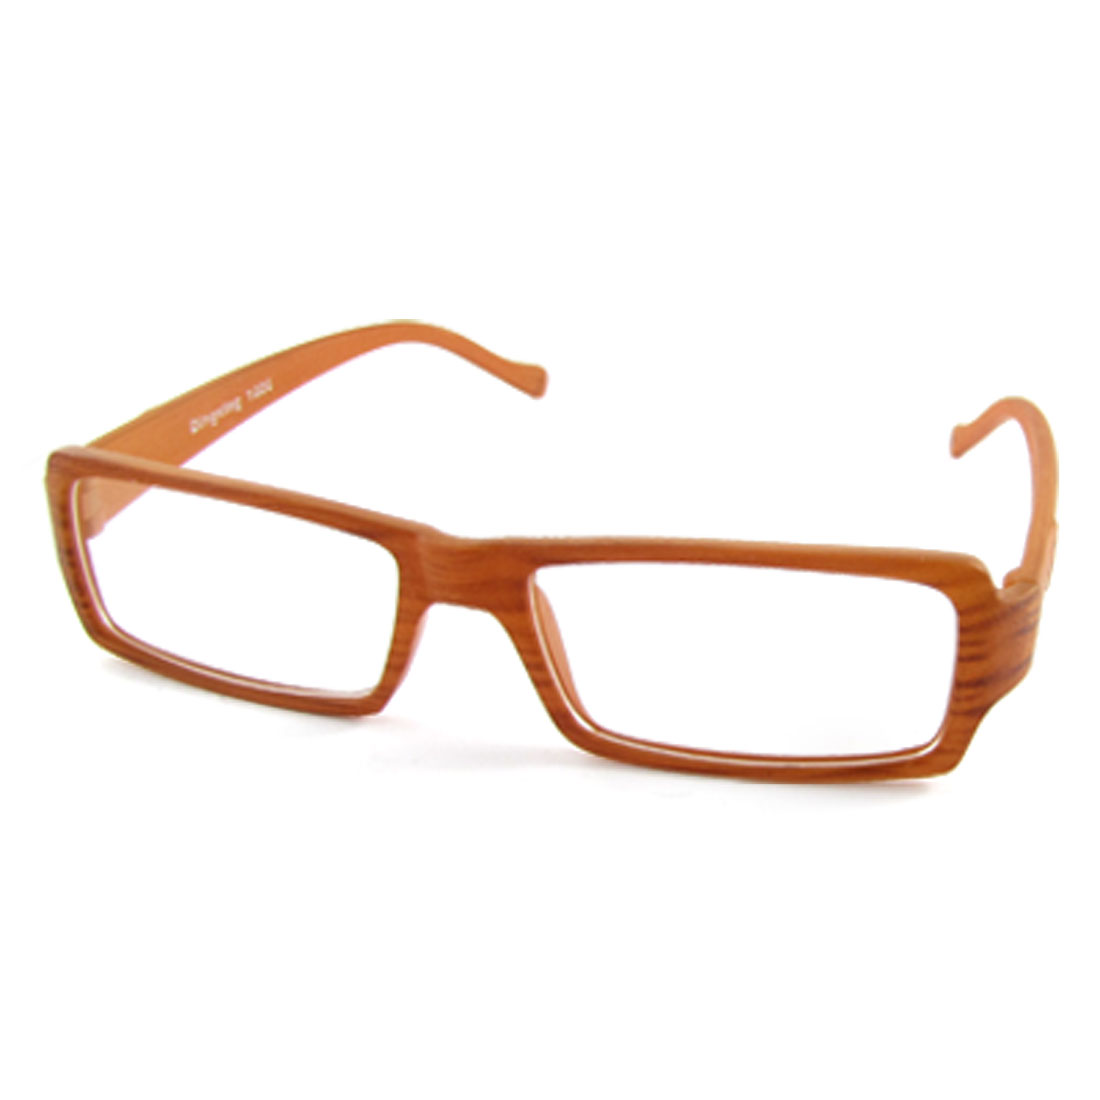 Unisex Brown Wood Grain Frame Plain Spectacles Rectangle Eyeglasses